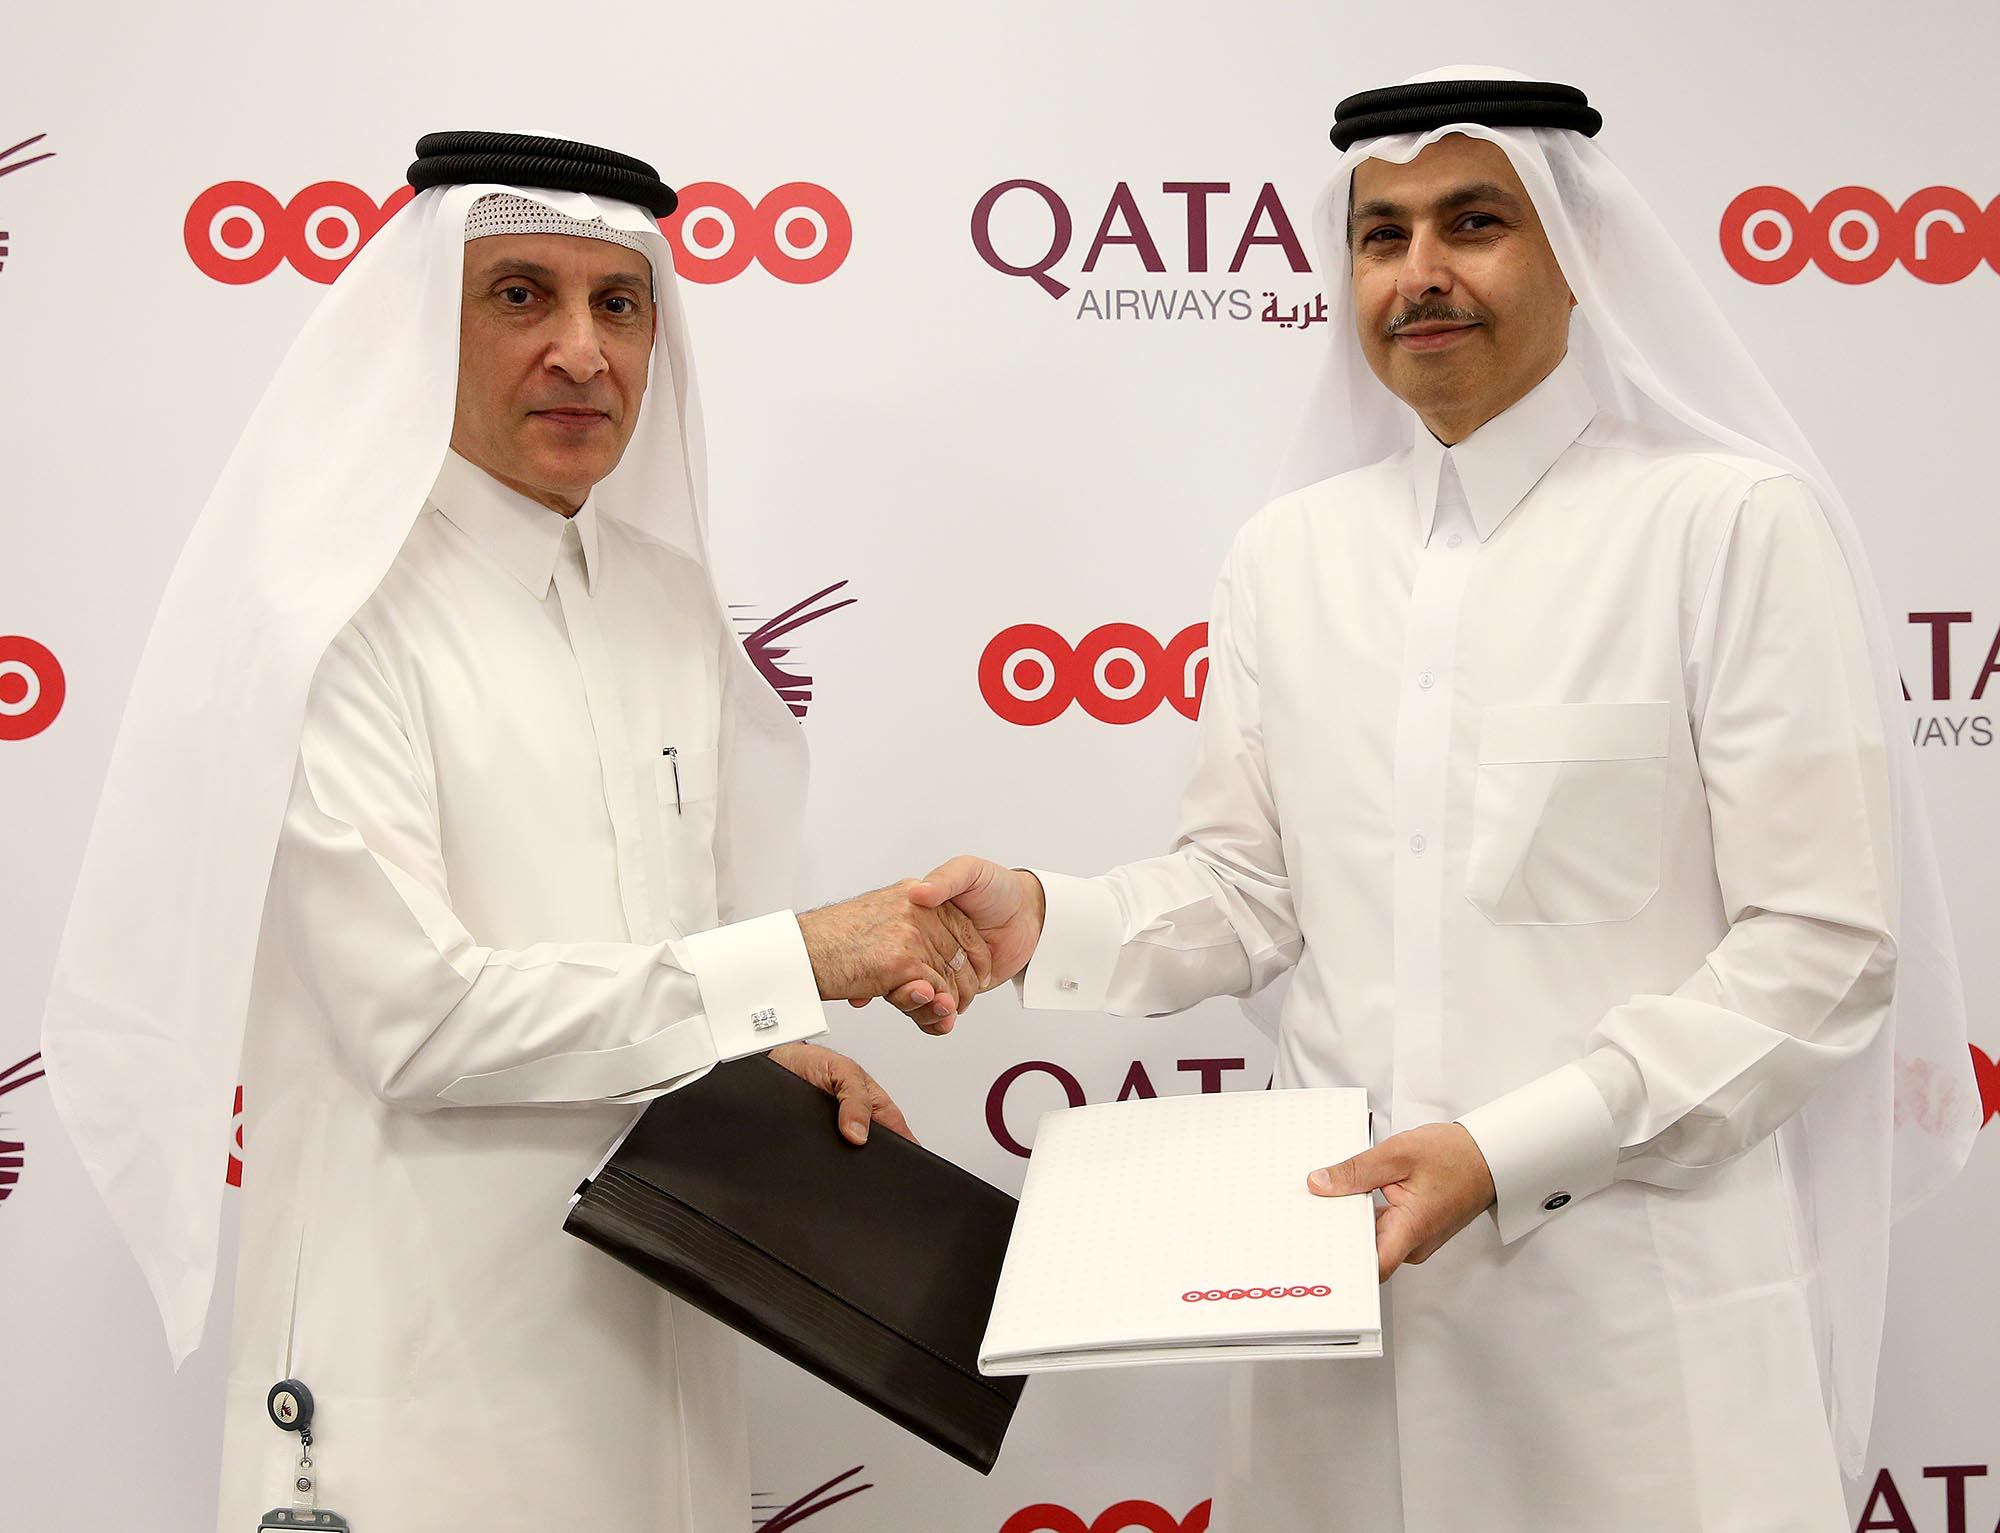 Qatar Airways Migrates Systems to the Ooredoo Data Centre